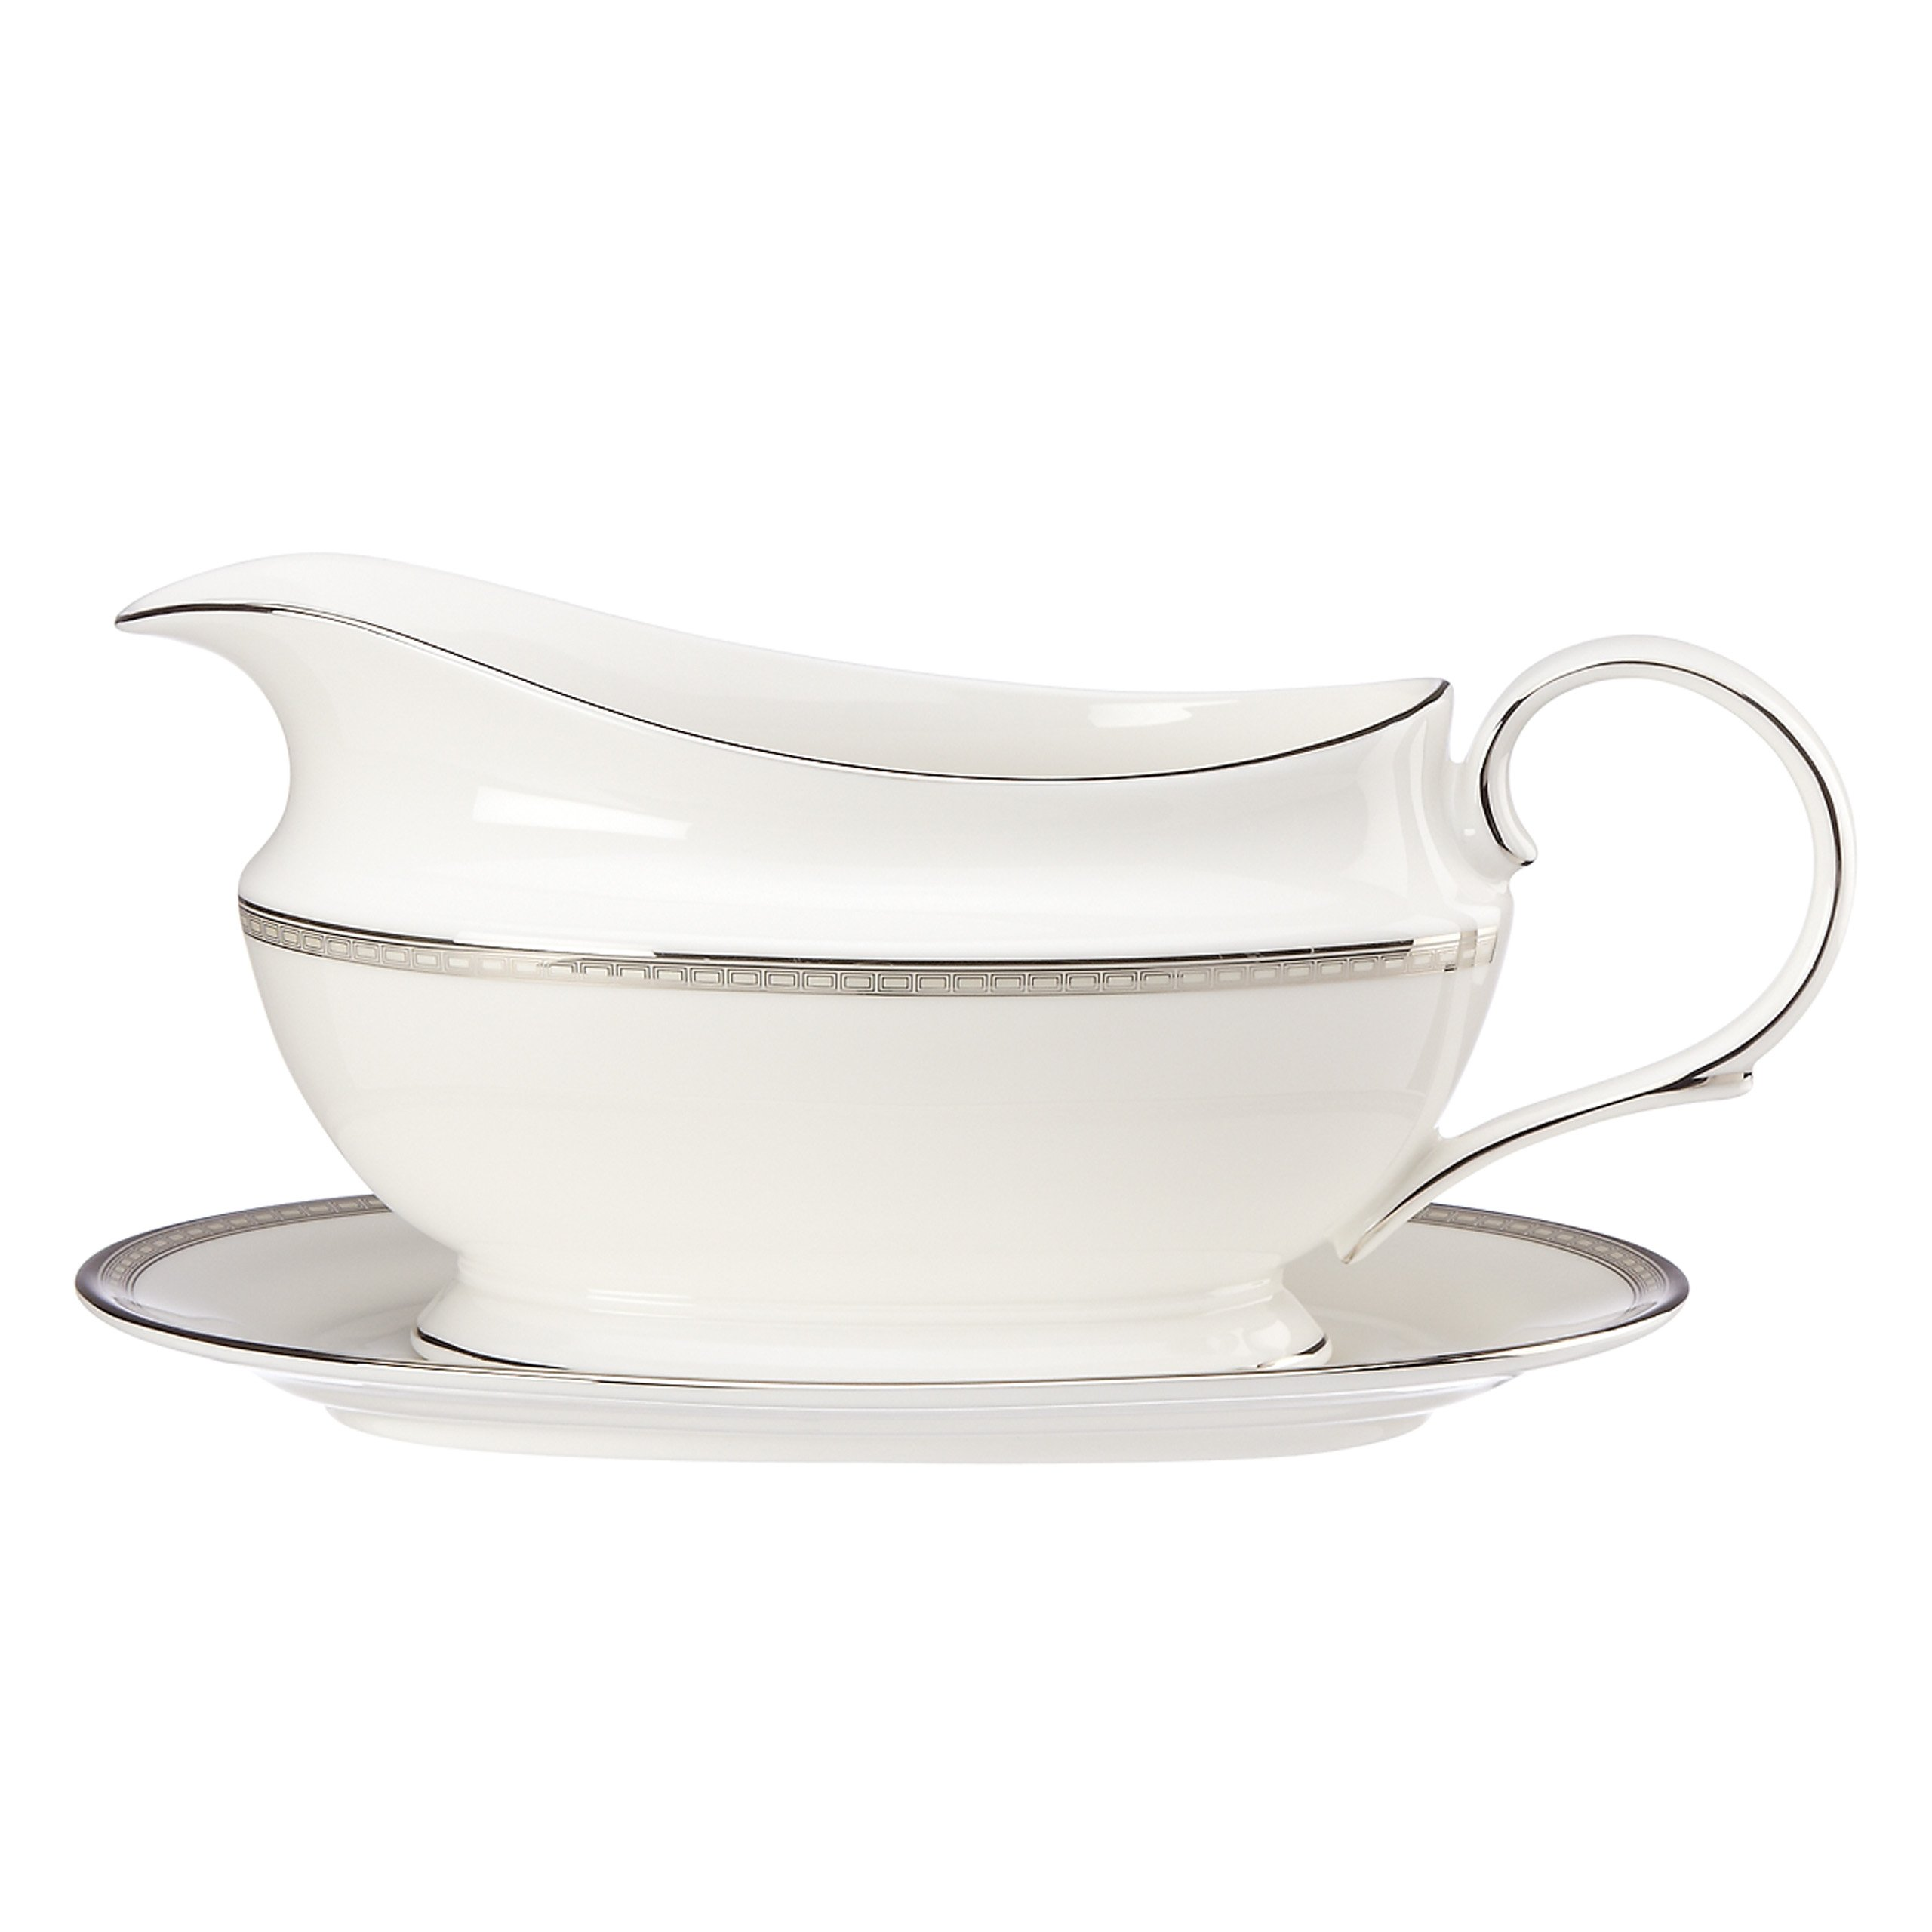 Lenox Murray Hill Sauce Boat and Stand, White by Lenox